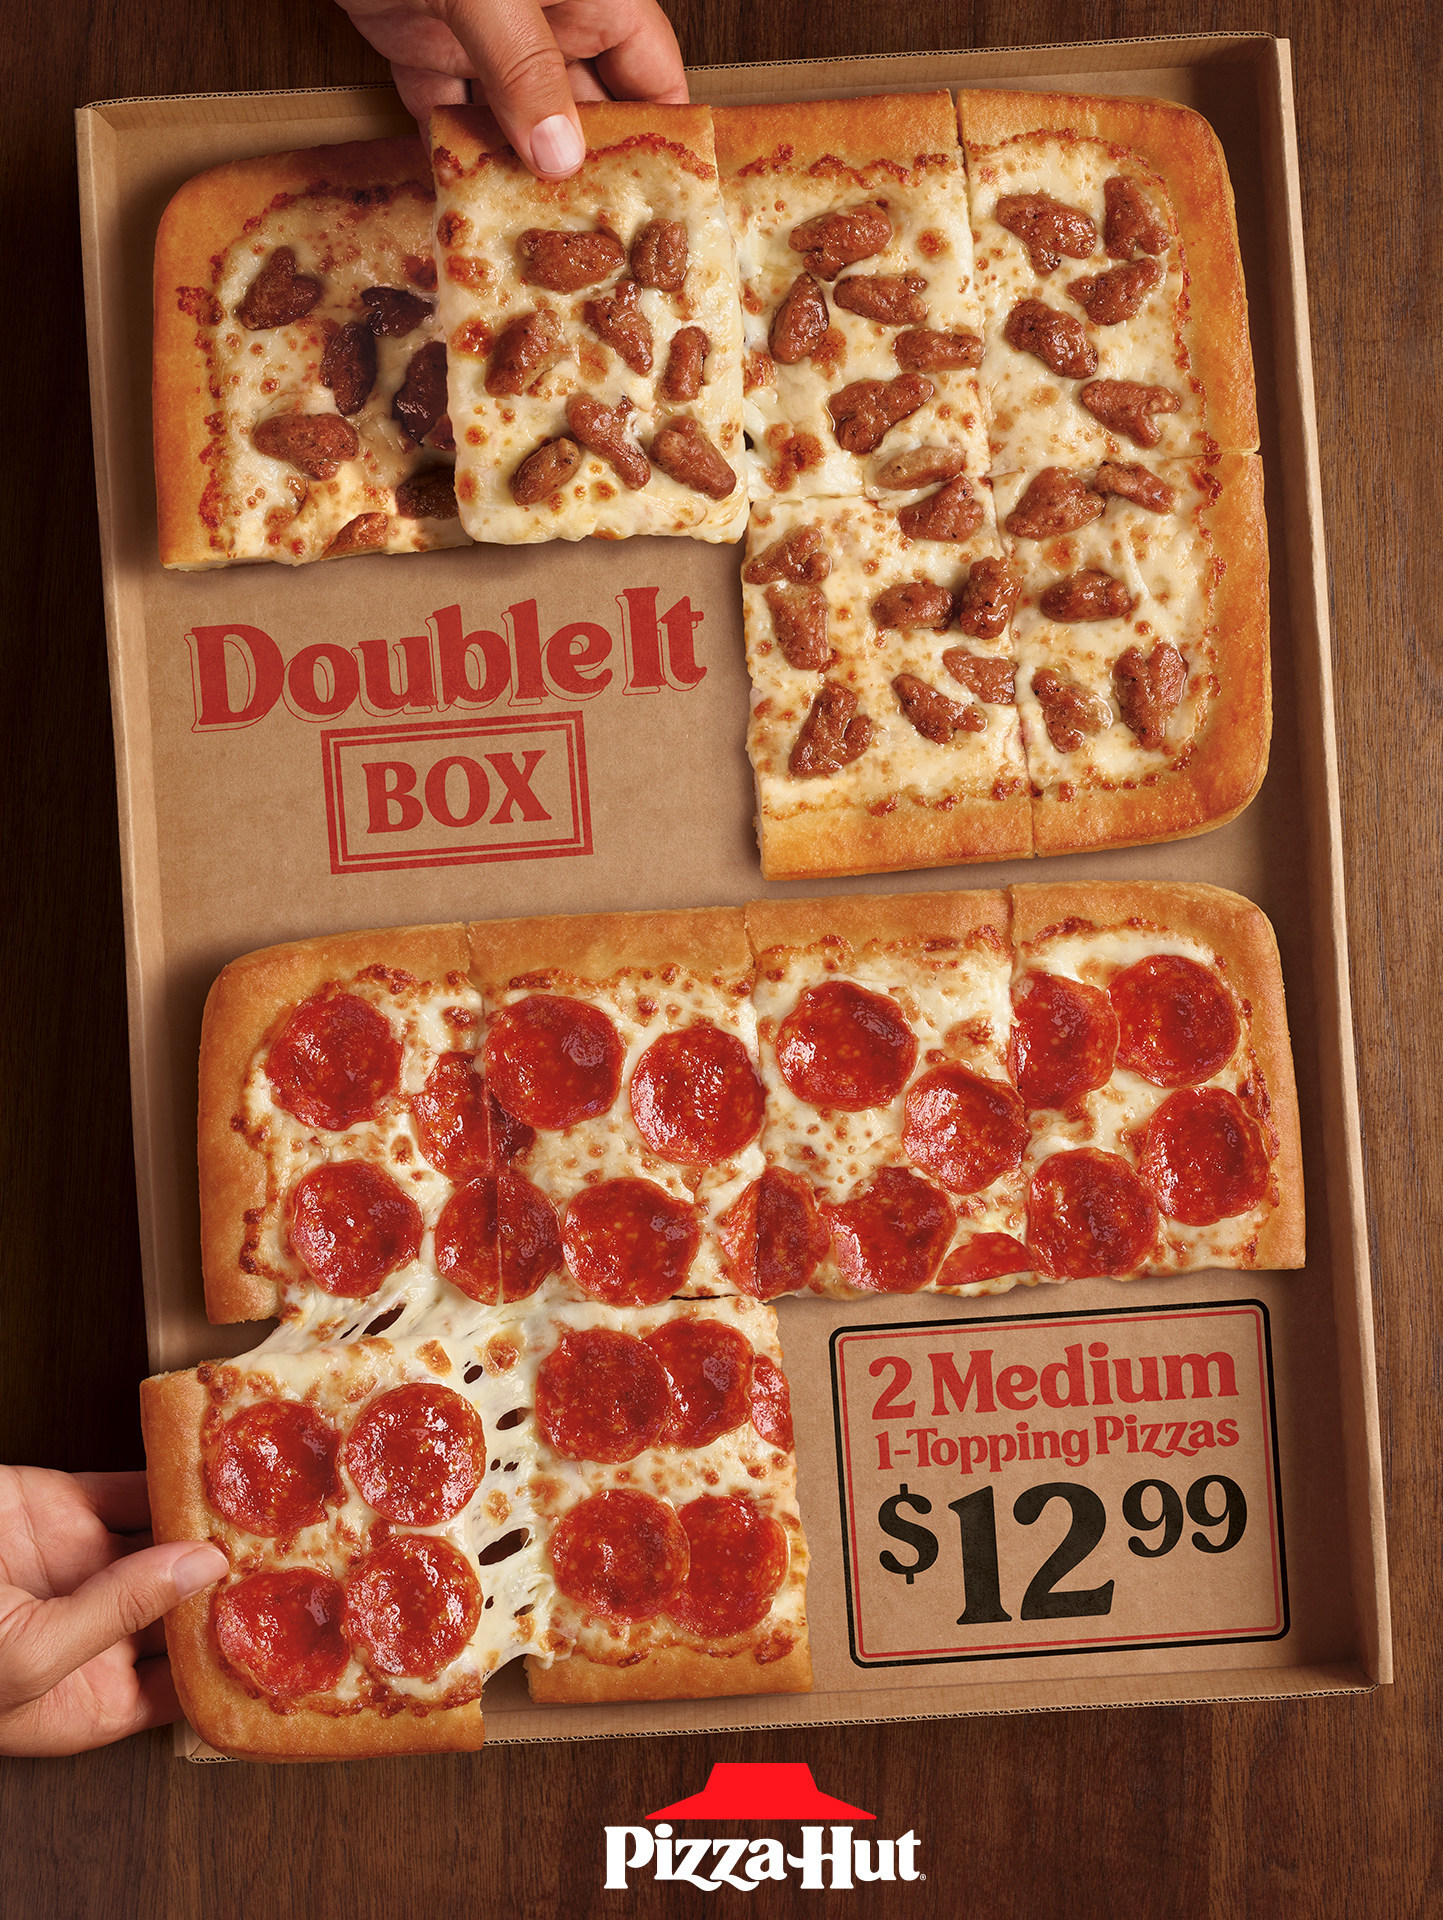 Pizza Hut Solves The Family Food Feud With All New Double It Box